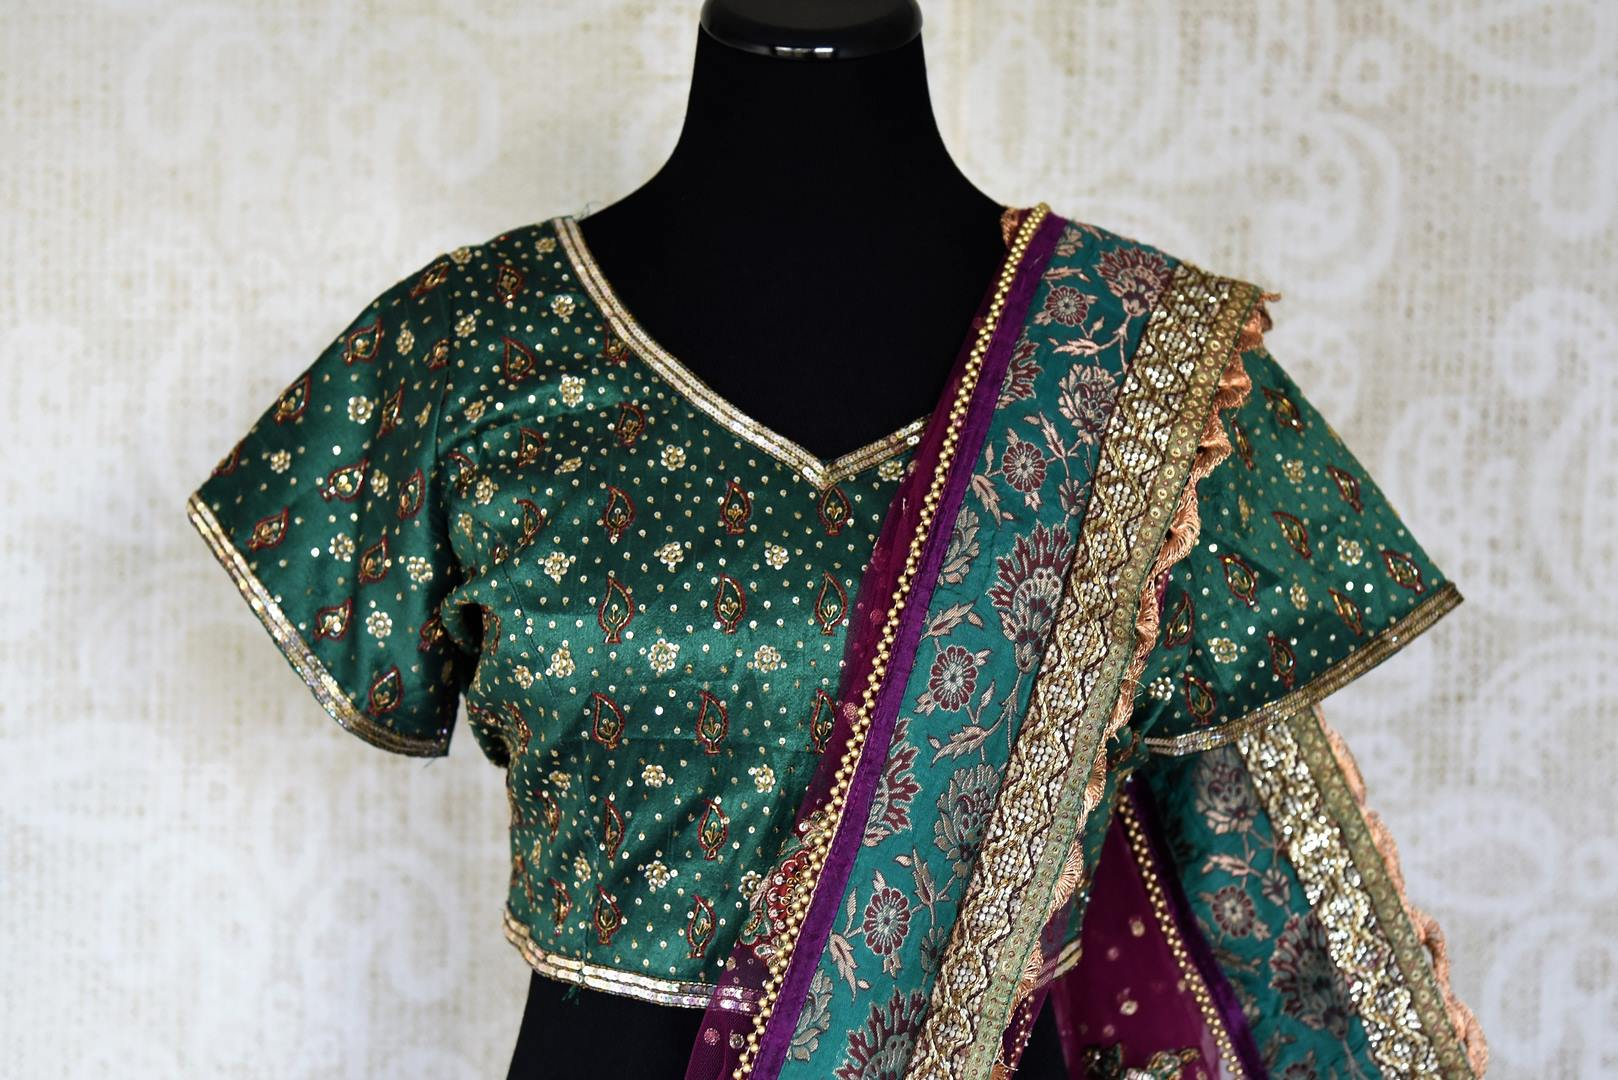 Buy sea green Banarasi and net embroidered saree with blouse online in USA from Pure Elegance. Let your ethnic style be one of a kind with an exquisite variety of Indian handloom sarees, pure silk sarees, designer sarees from our exclusive fashion store in USA-blouse pallu